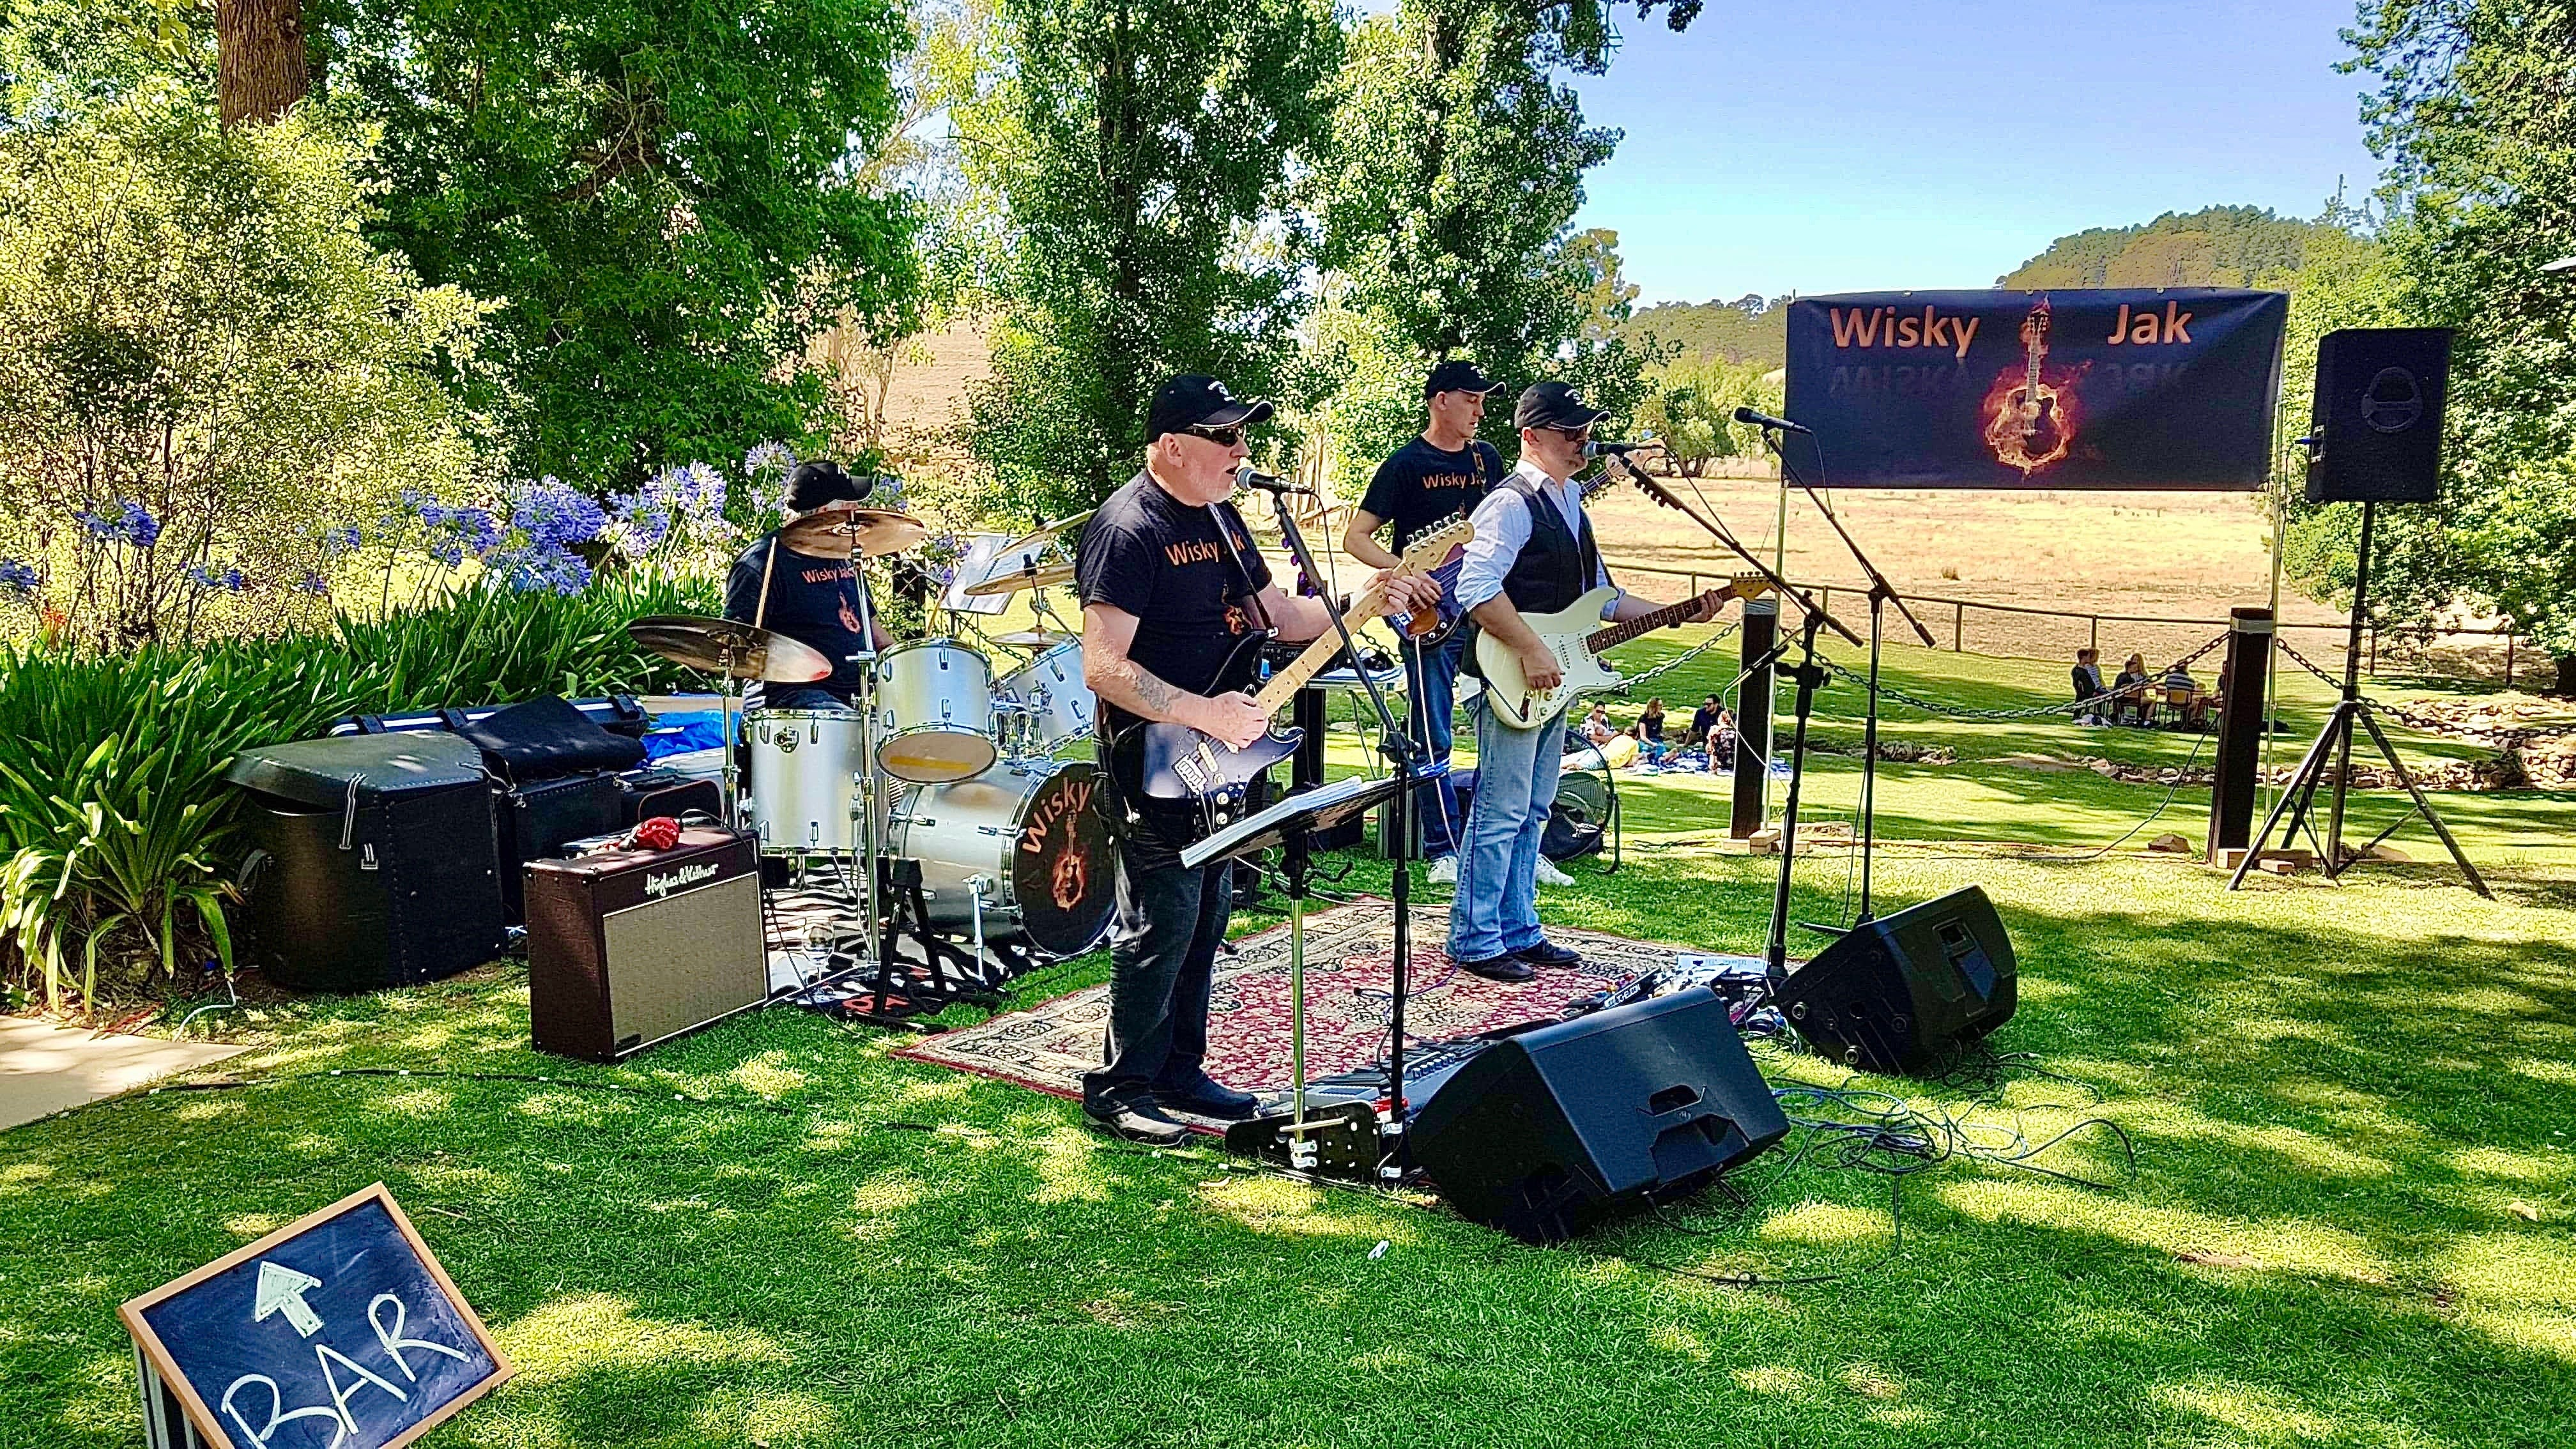 Angas Plains Wines Live in the Vines with the band -Wisky Jak - Whitsundays Tourism